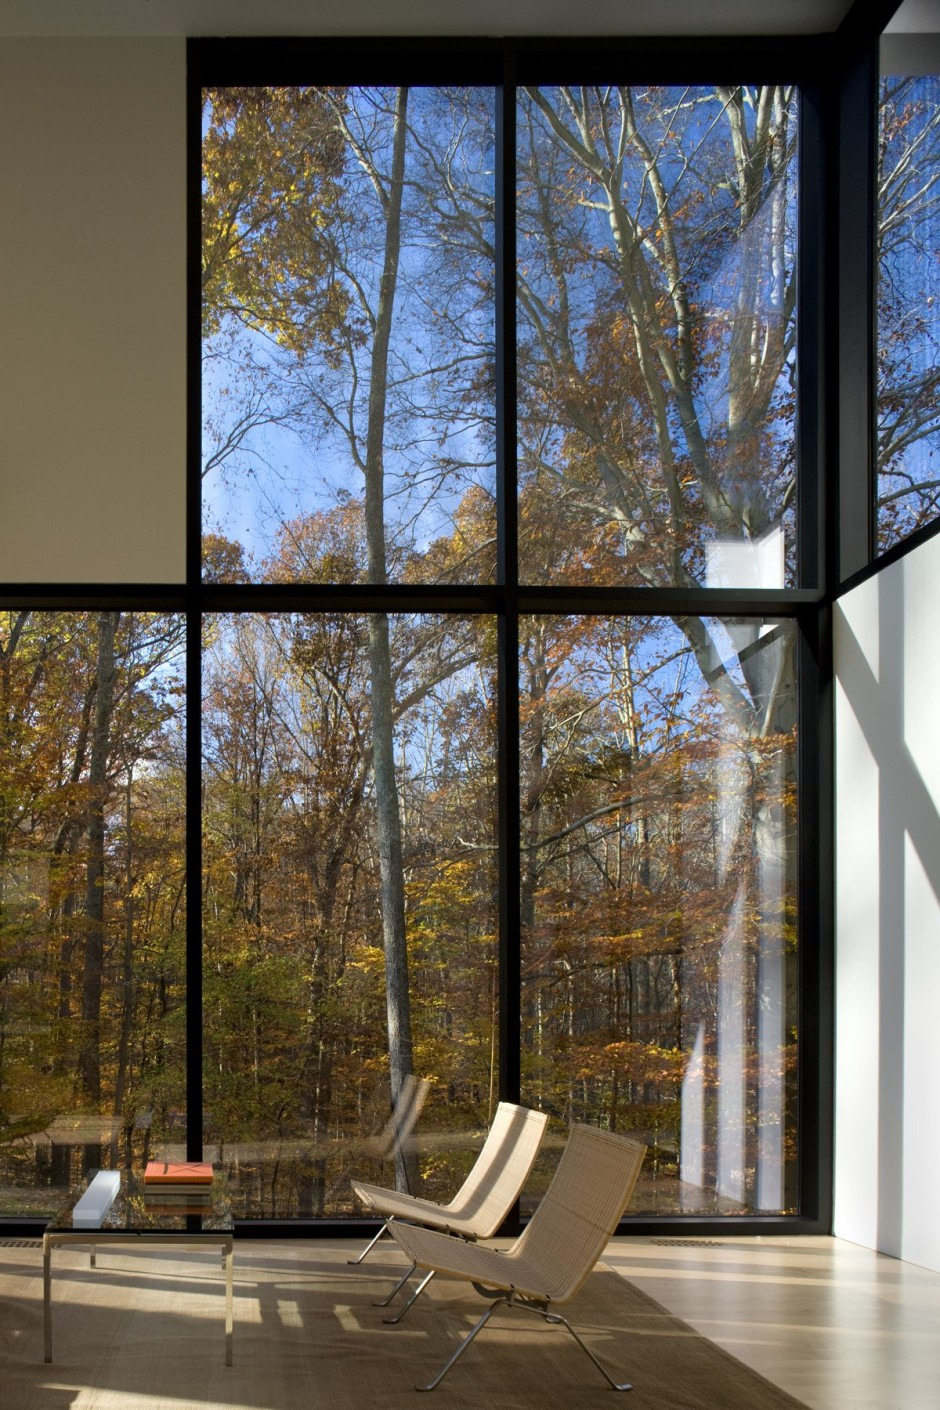 rising glass windows for maximum forest view